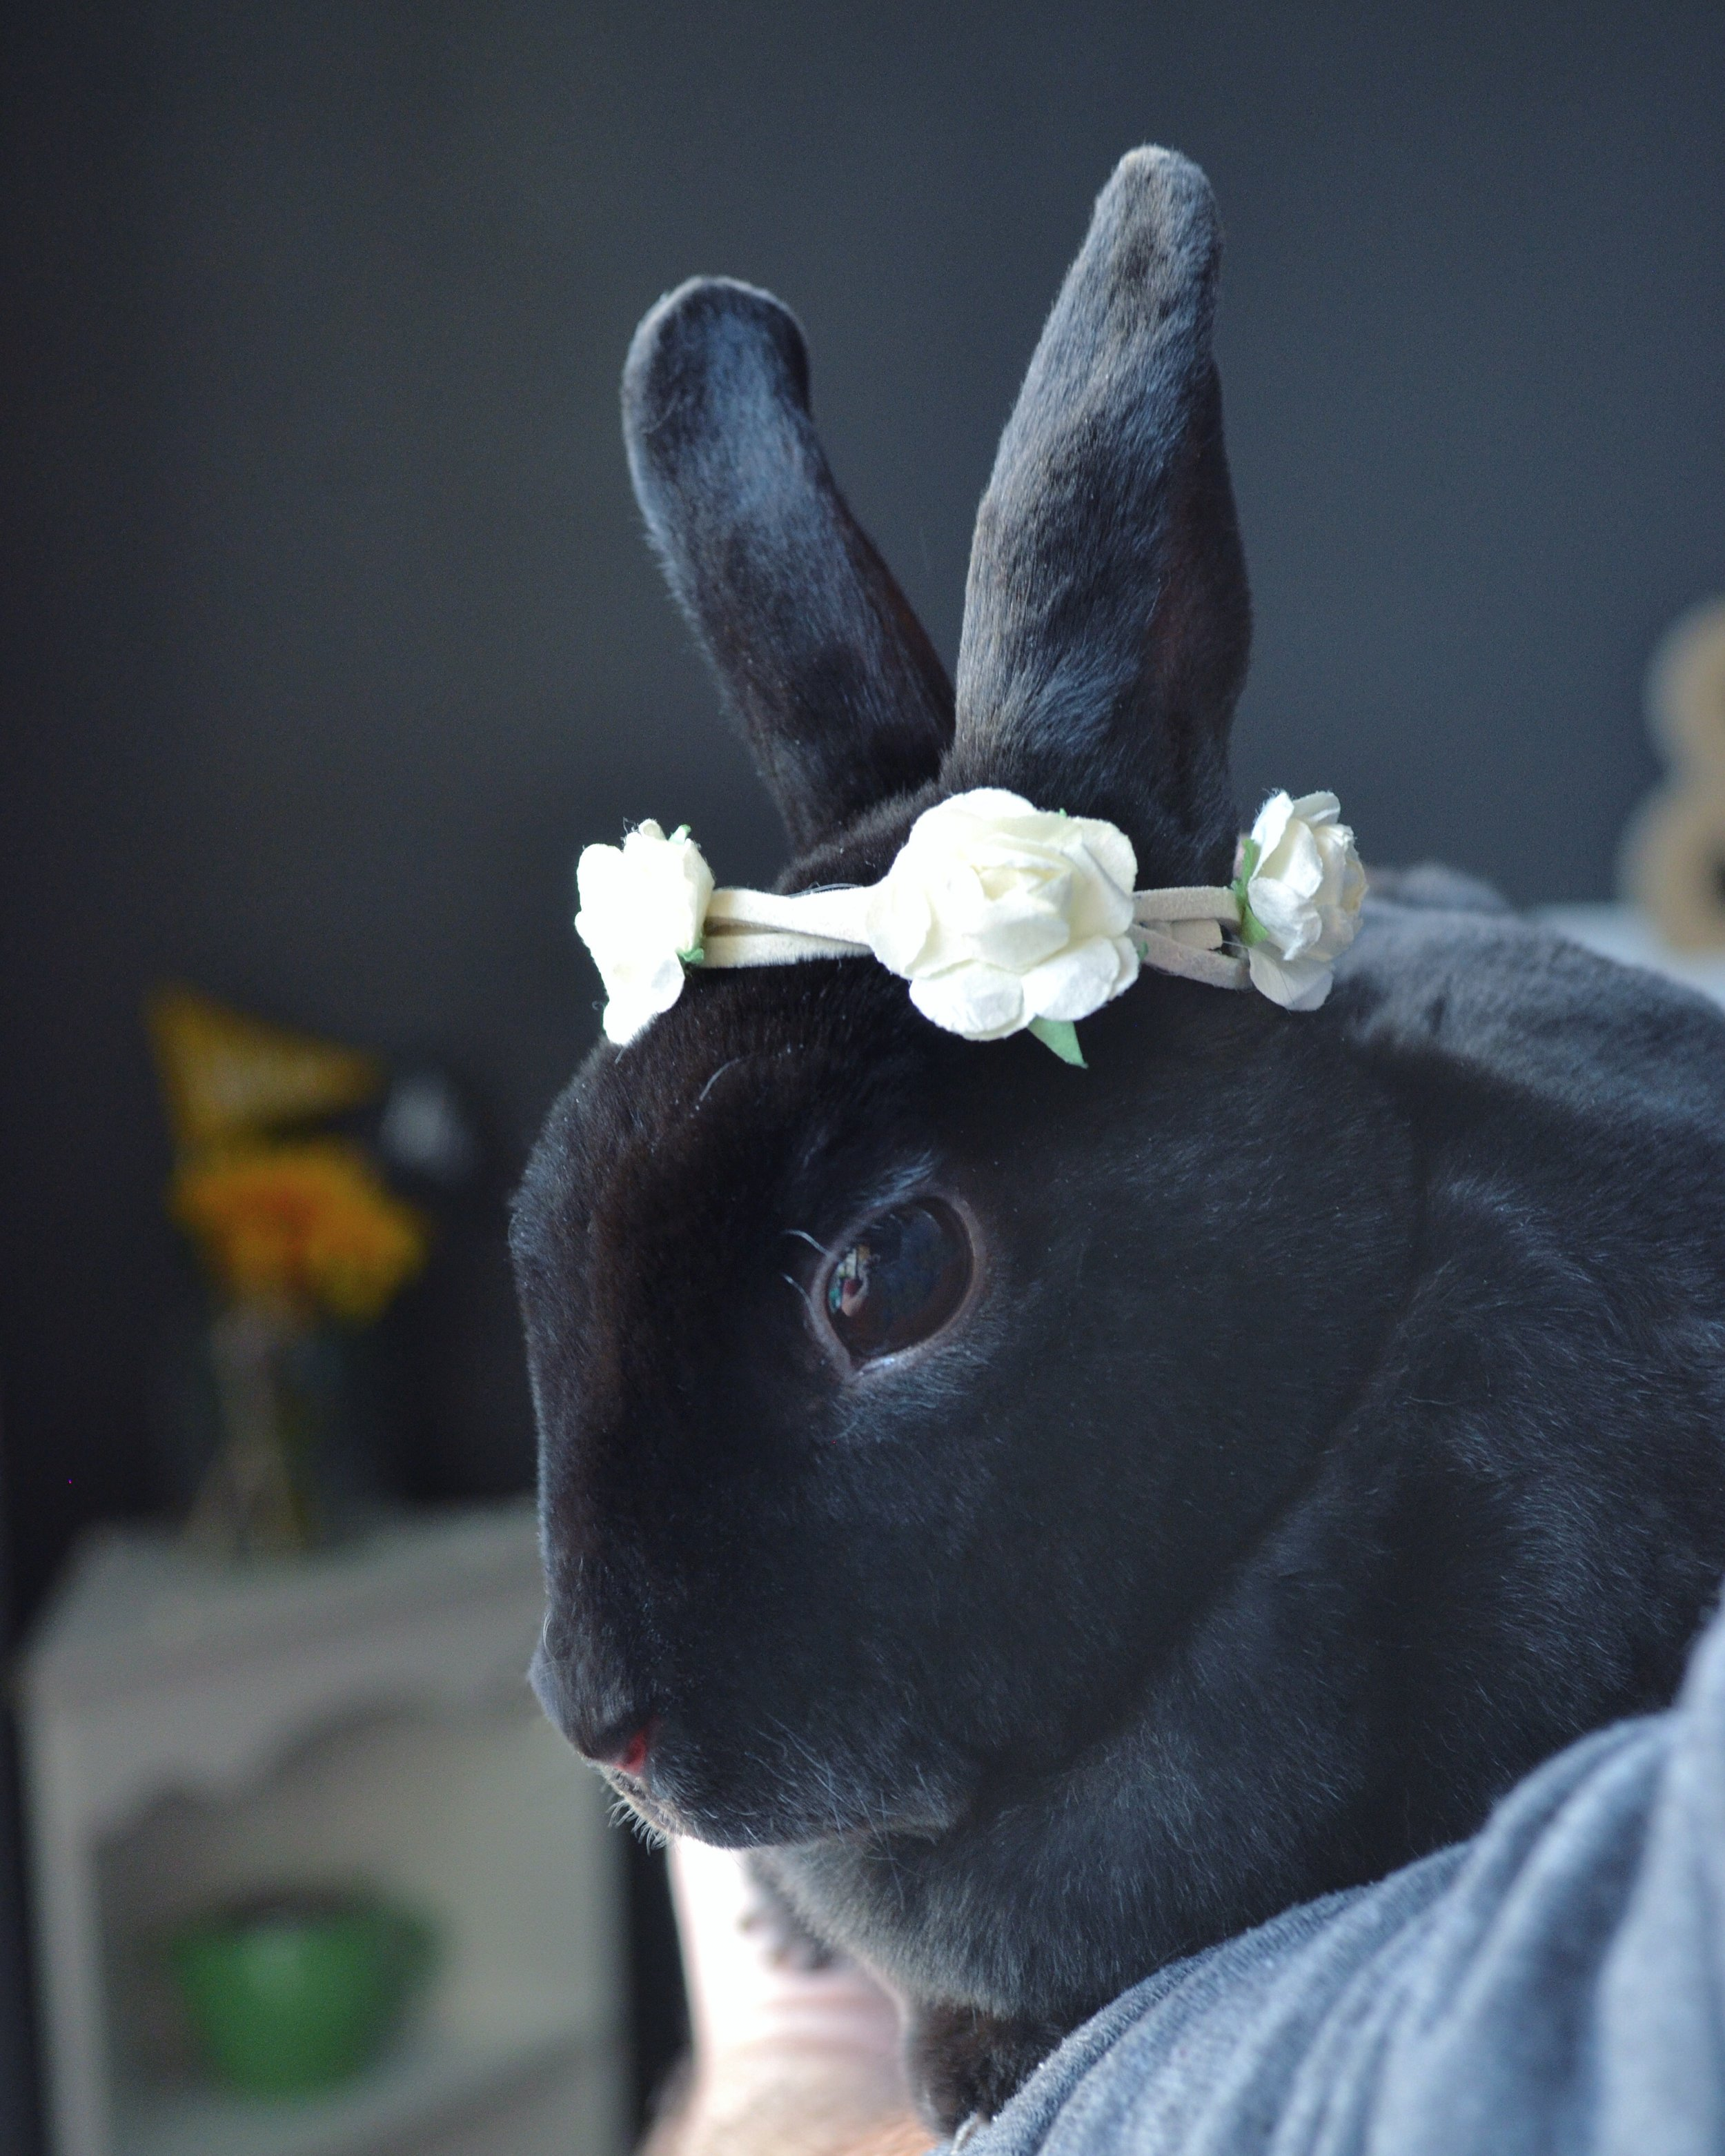 #1 AURORA // We adopted our 2nd gorgeous rex rabbit. She is a velvet loving spitfire that brings so much joy into our lives.